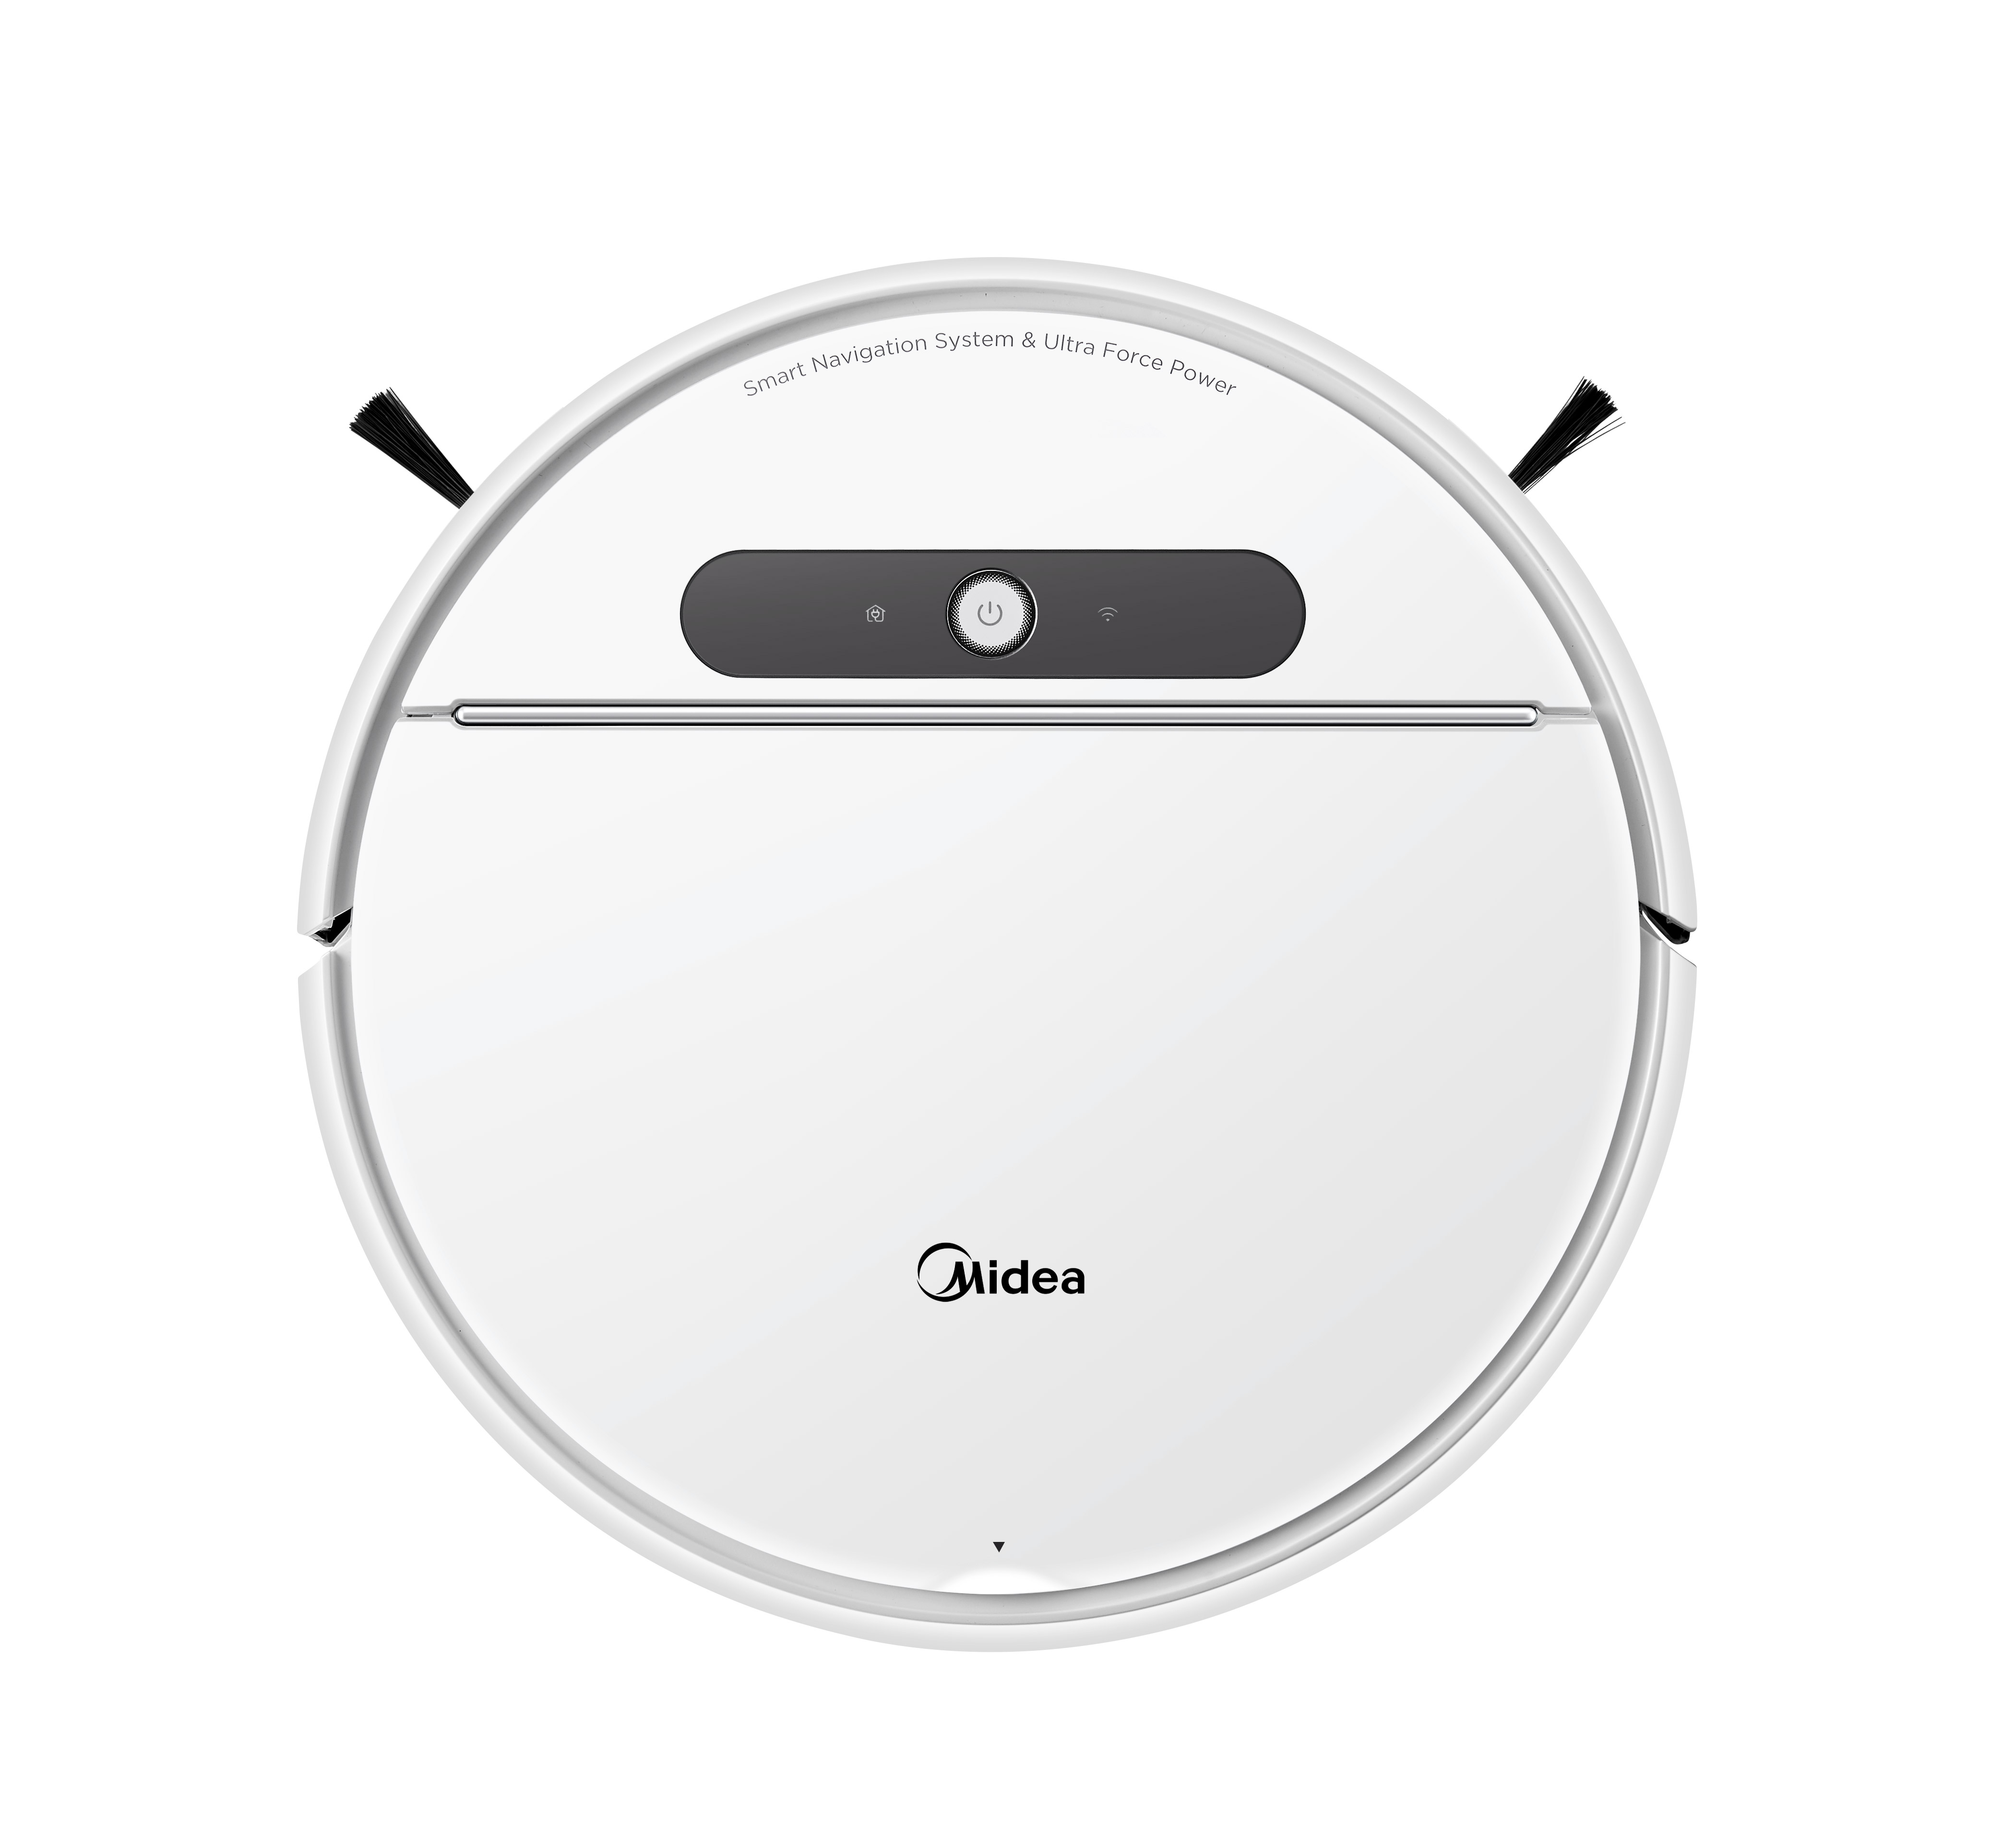 Midea MR07 Global Version Robot Vacuum Cleaner Mopping Sweep Wet Cleaning With Water Tank APP & Remote Control